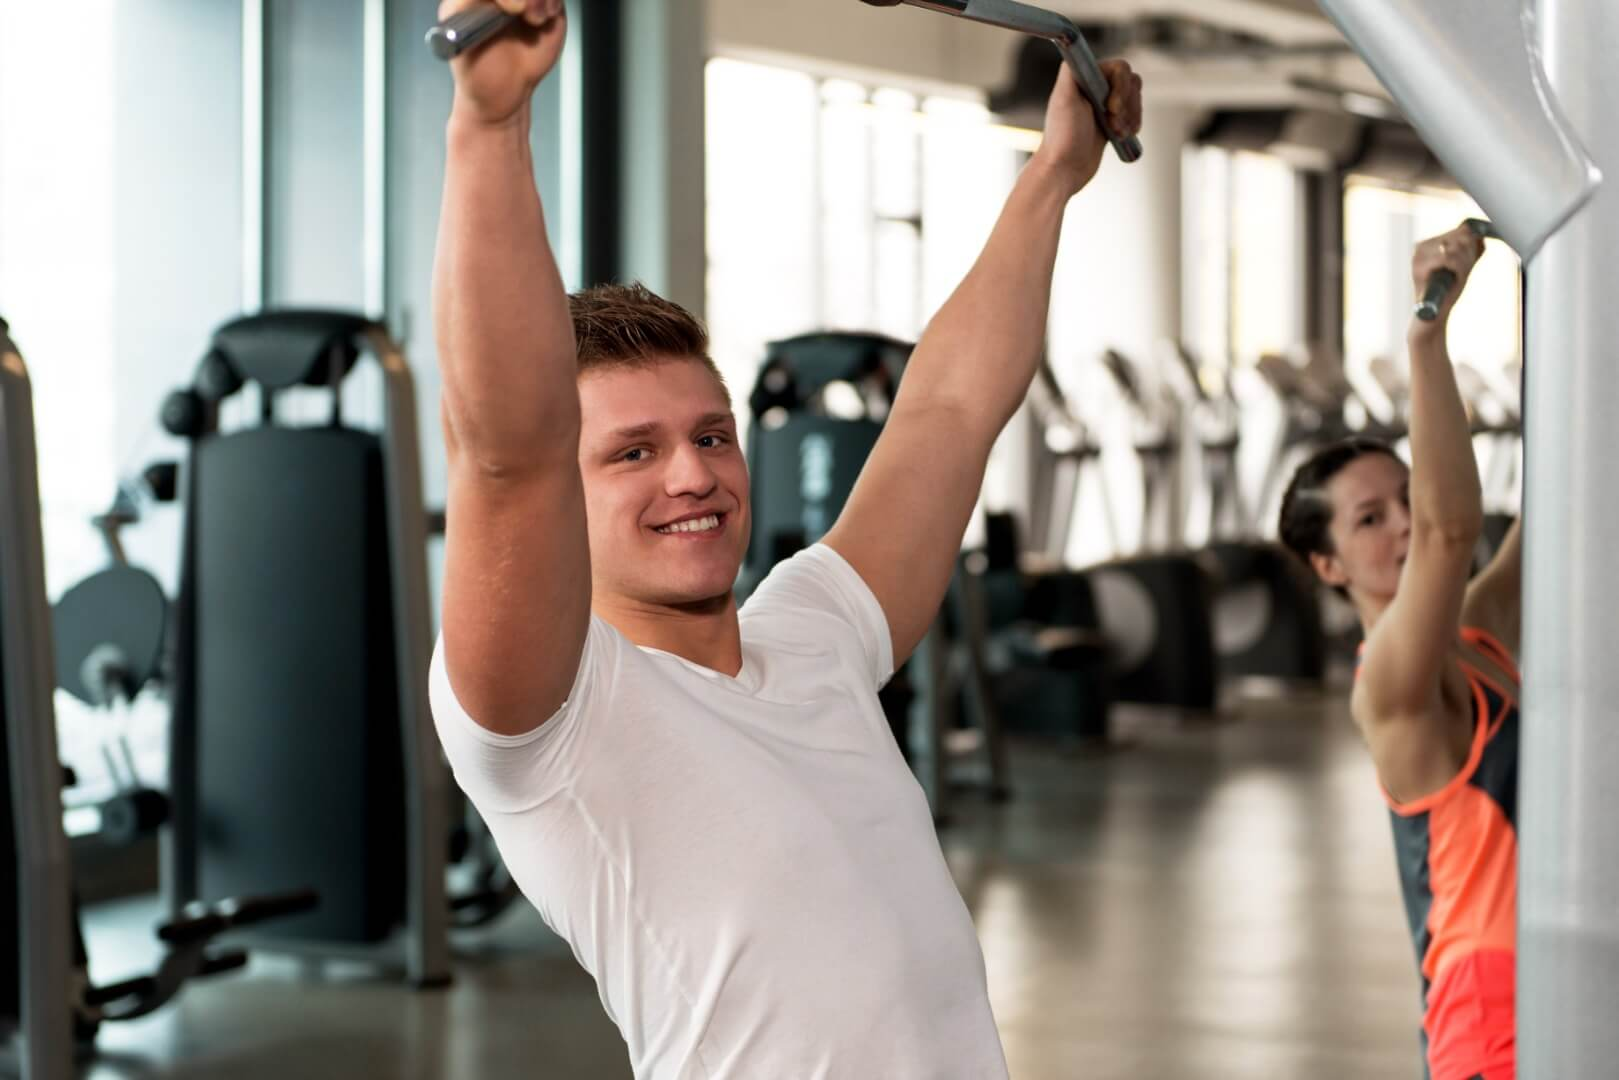 A young man works out in the gym